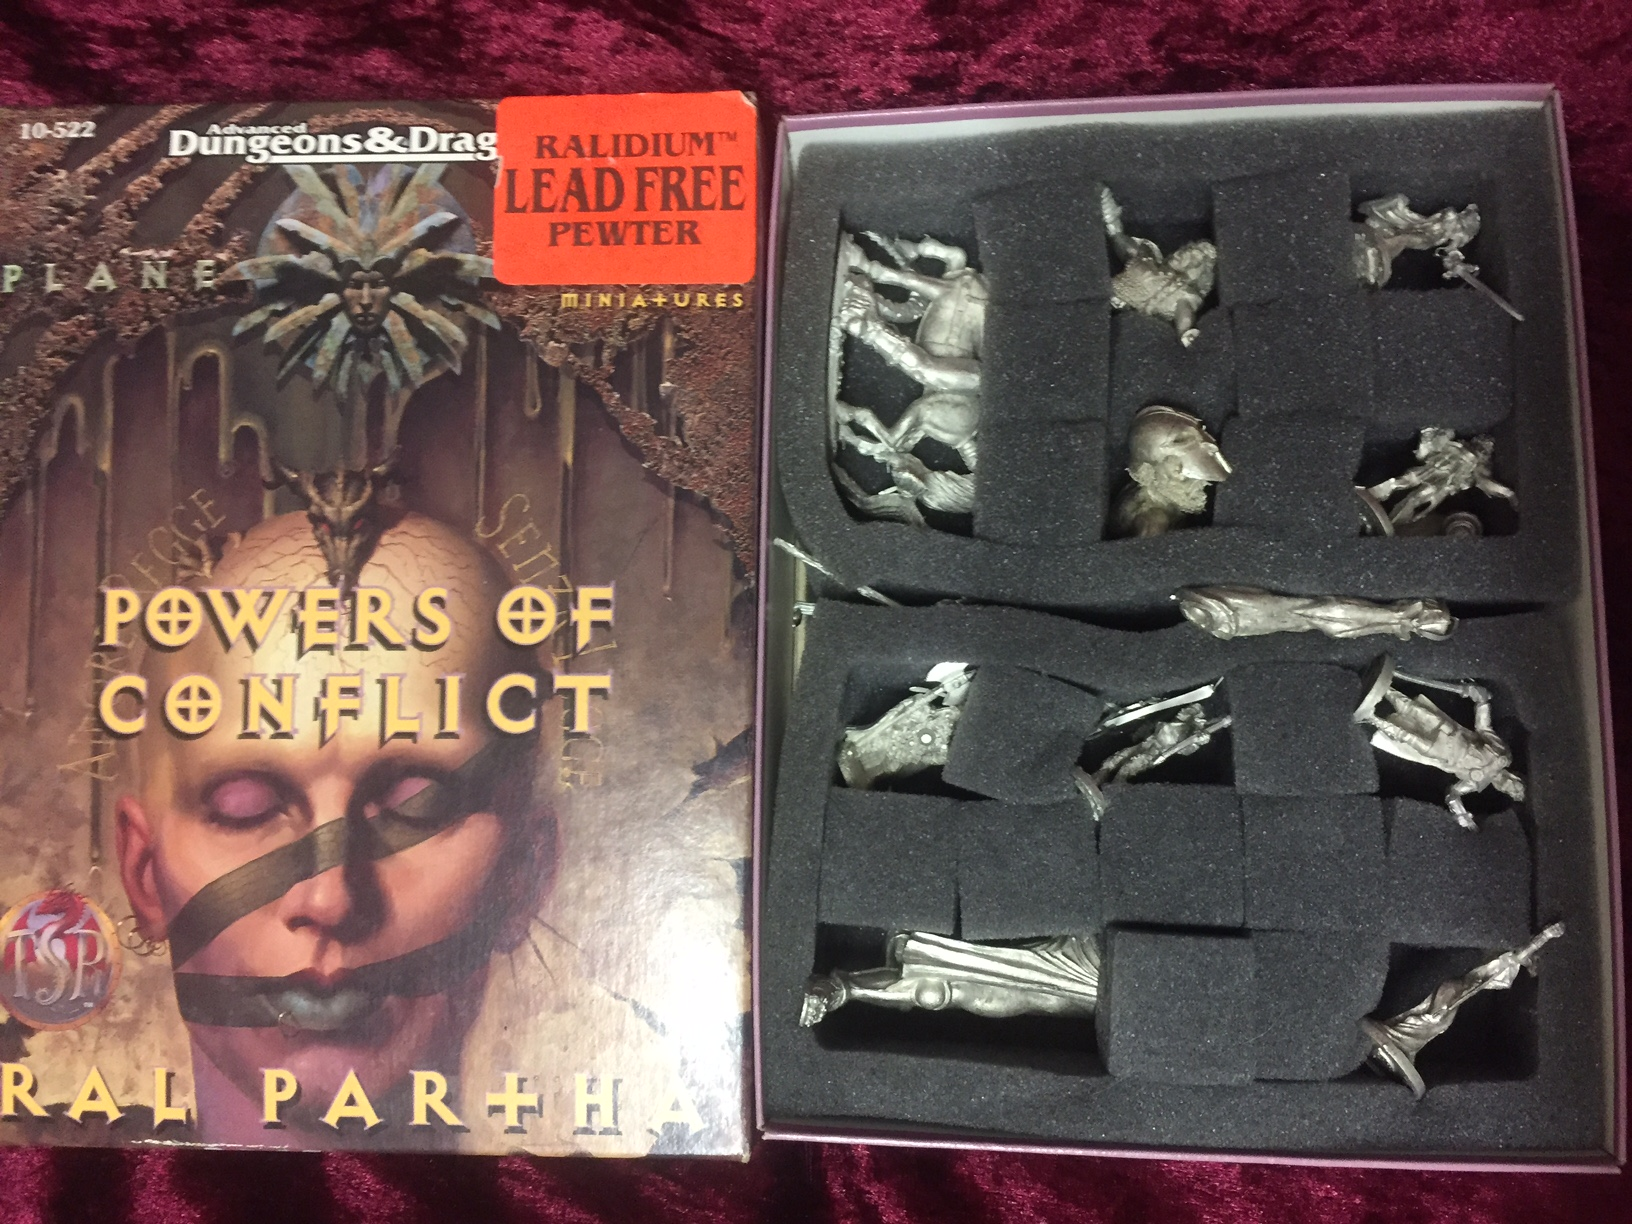 Planescape Powers of Conflict Miniatures AD&D 2E 10-522 Ral Partha